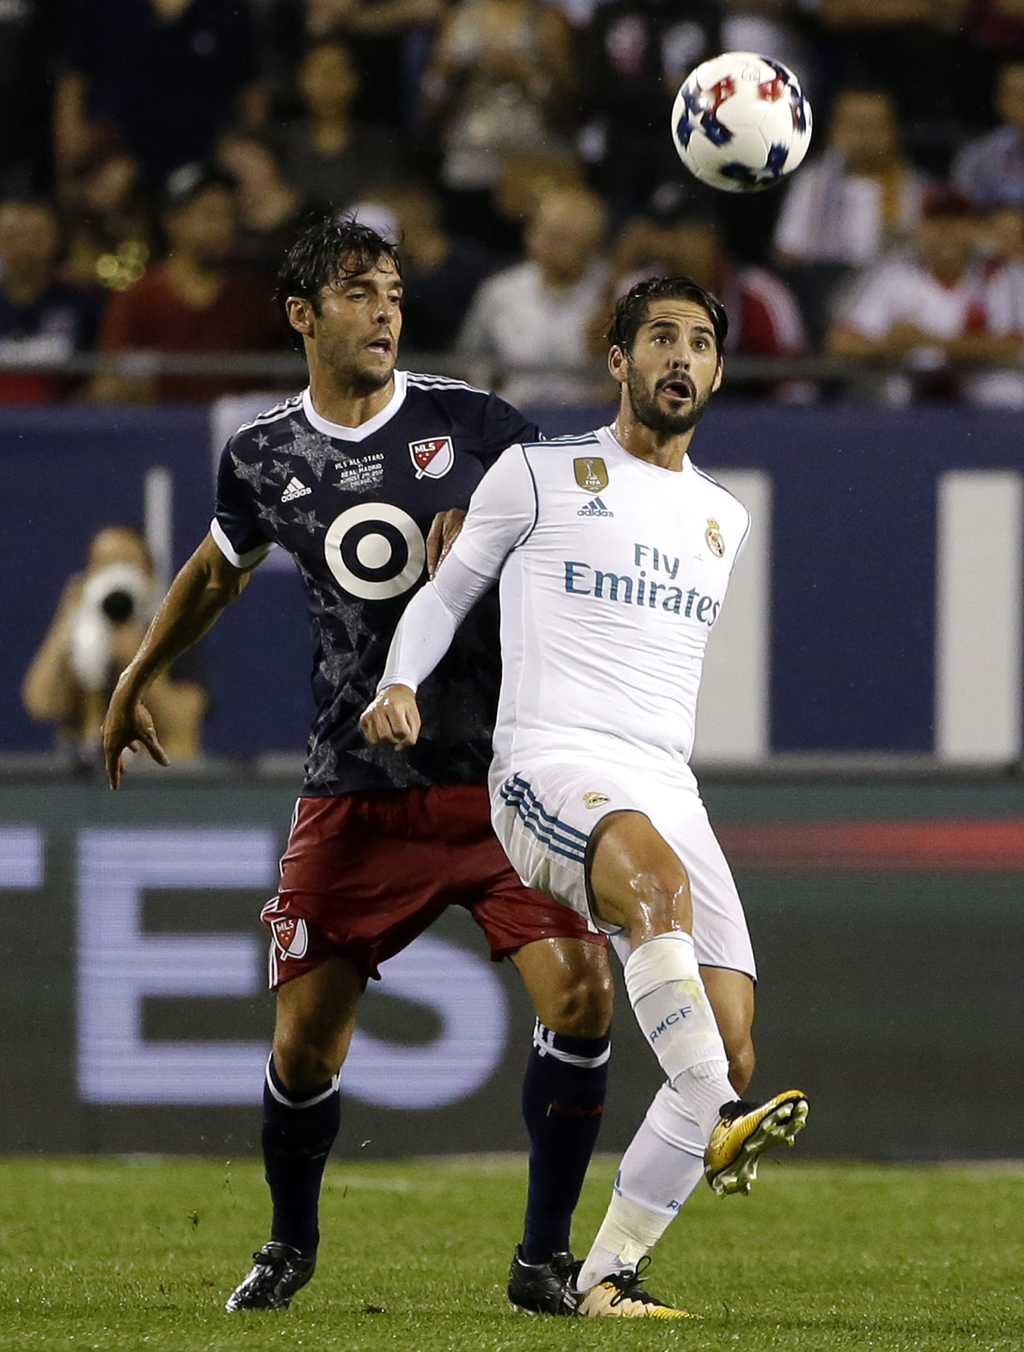 Real Madrid's Isco, right, controls the ball against MLS All-Stars' Kaka during the first half of the MLS All-Star Game, Wednesday, Aug. 2, 2017, in C...